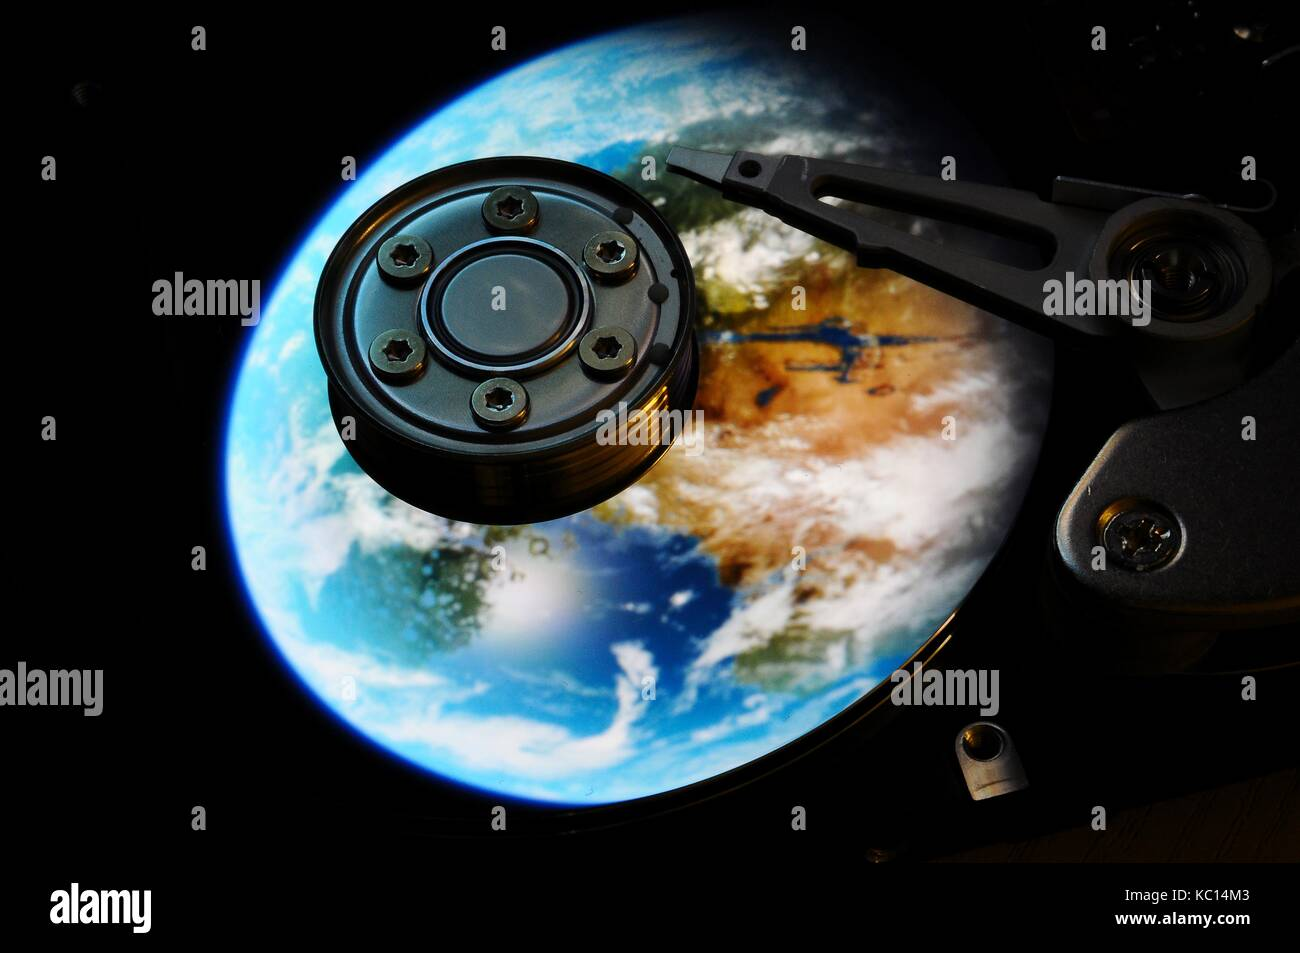 Open Hard Disk Drive of computer, with future color effects. background. - Stock Image